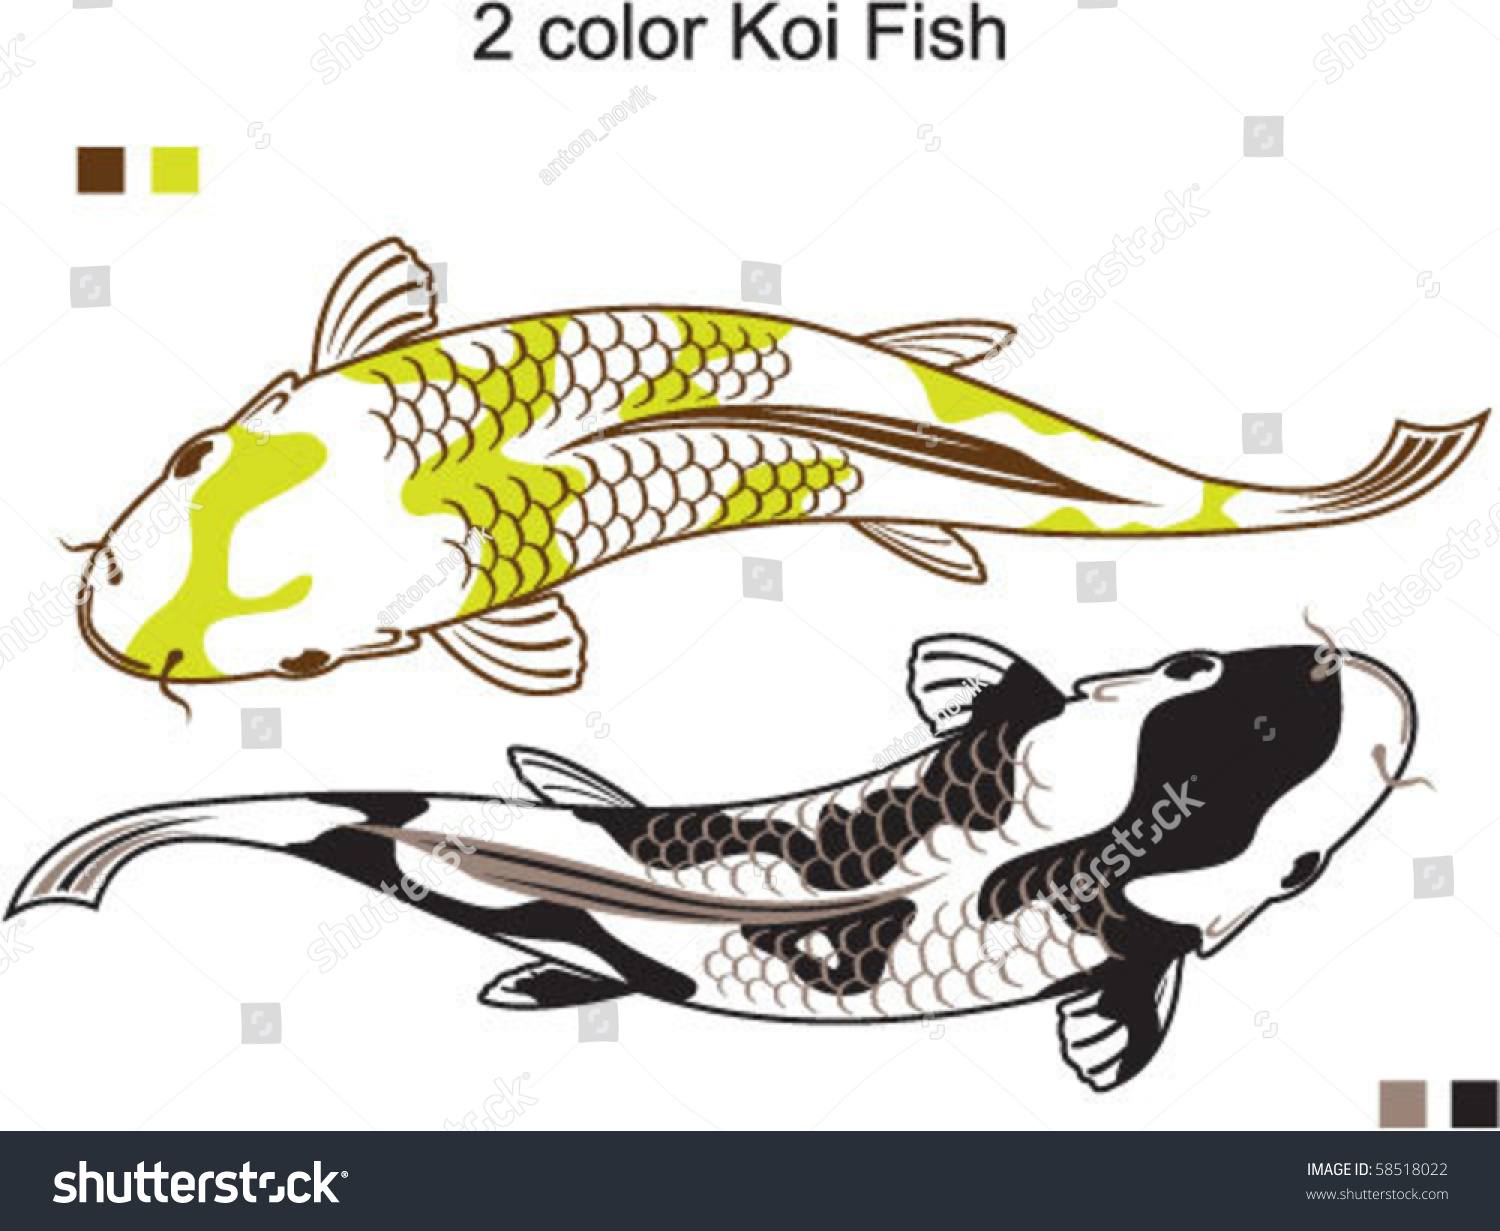 2 color koi fish stock vector 58518022 shutterstock for Koi meaning in english